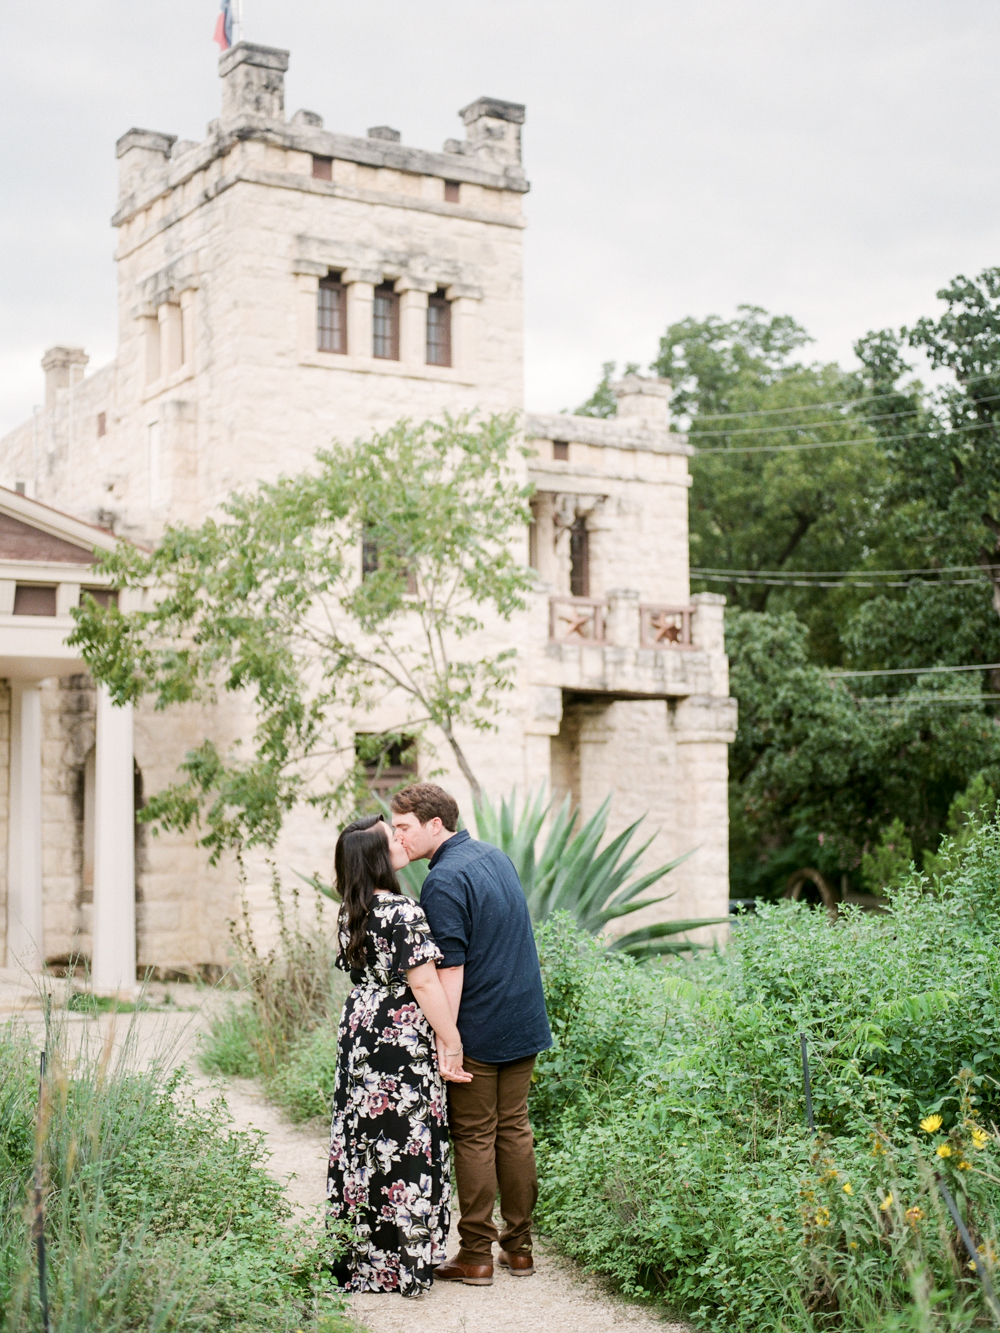 Christine Gosch - destination film photographer - houston wedding photographer - fine art film photographer - elopement photographer - destination wedding - understated wedding - simple beautiful wedding photography-6.jpg